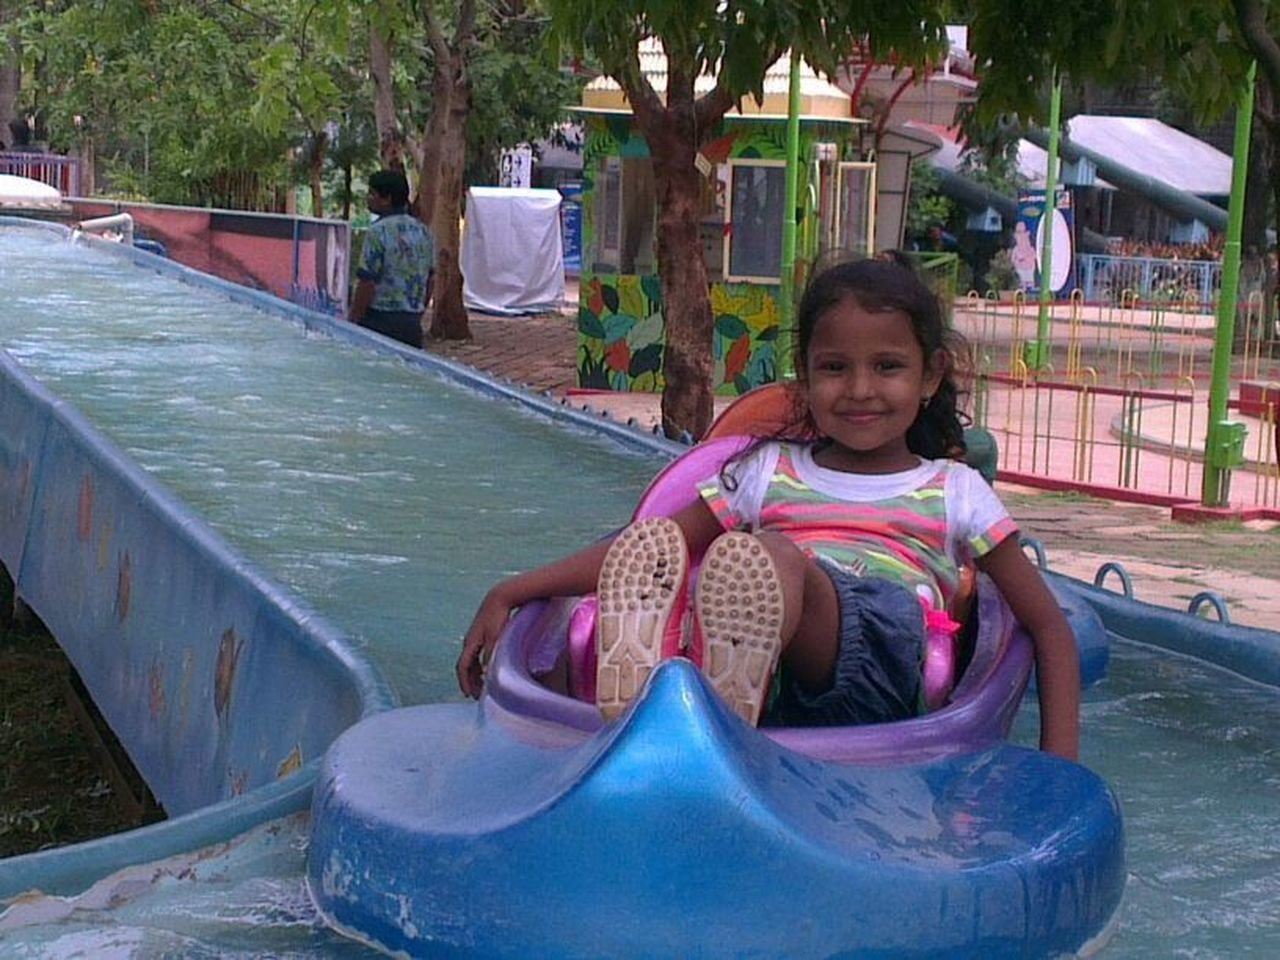 childhood, smiling, looking at camera, real people, happiness, front view, one person, portrait, playground, outdoors, leisure activity, tree, day, lifestyles, full length, sitting, playing, water, people